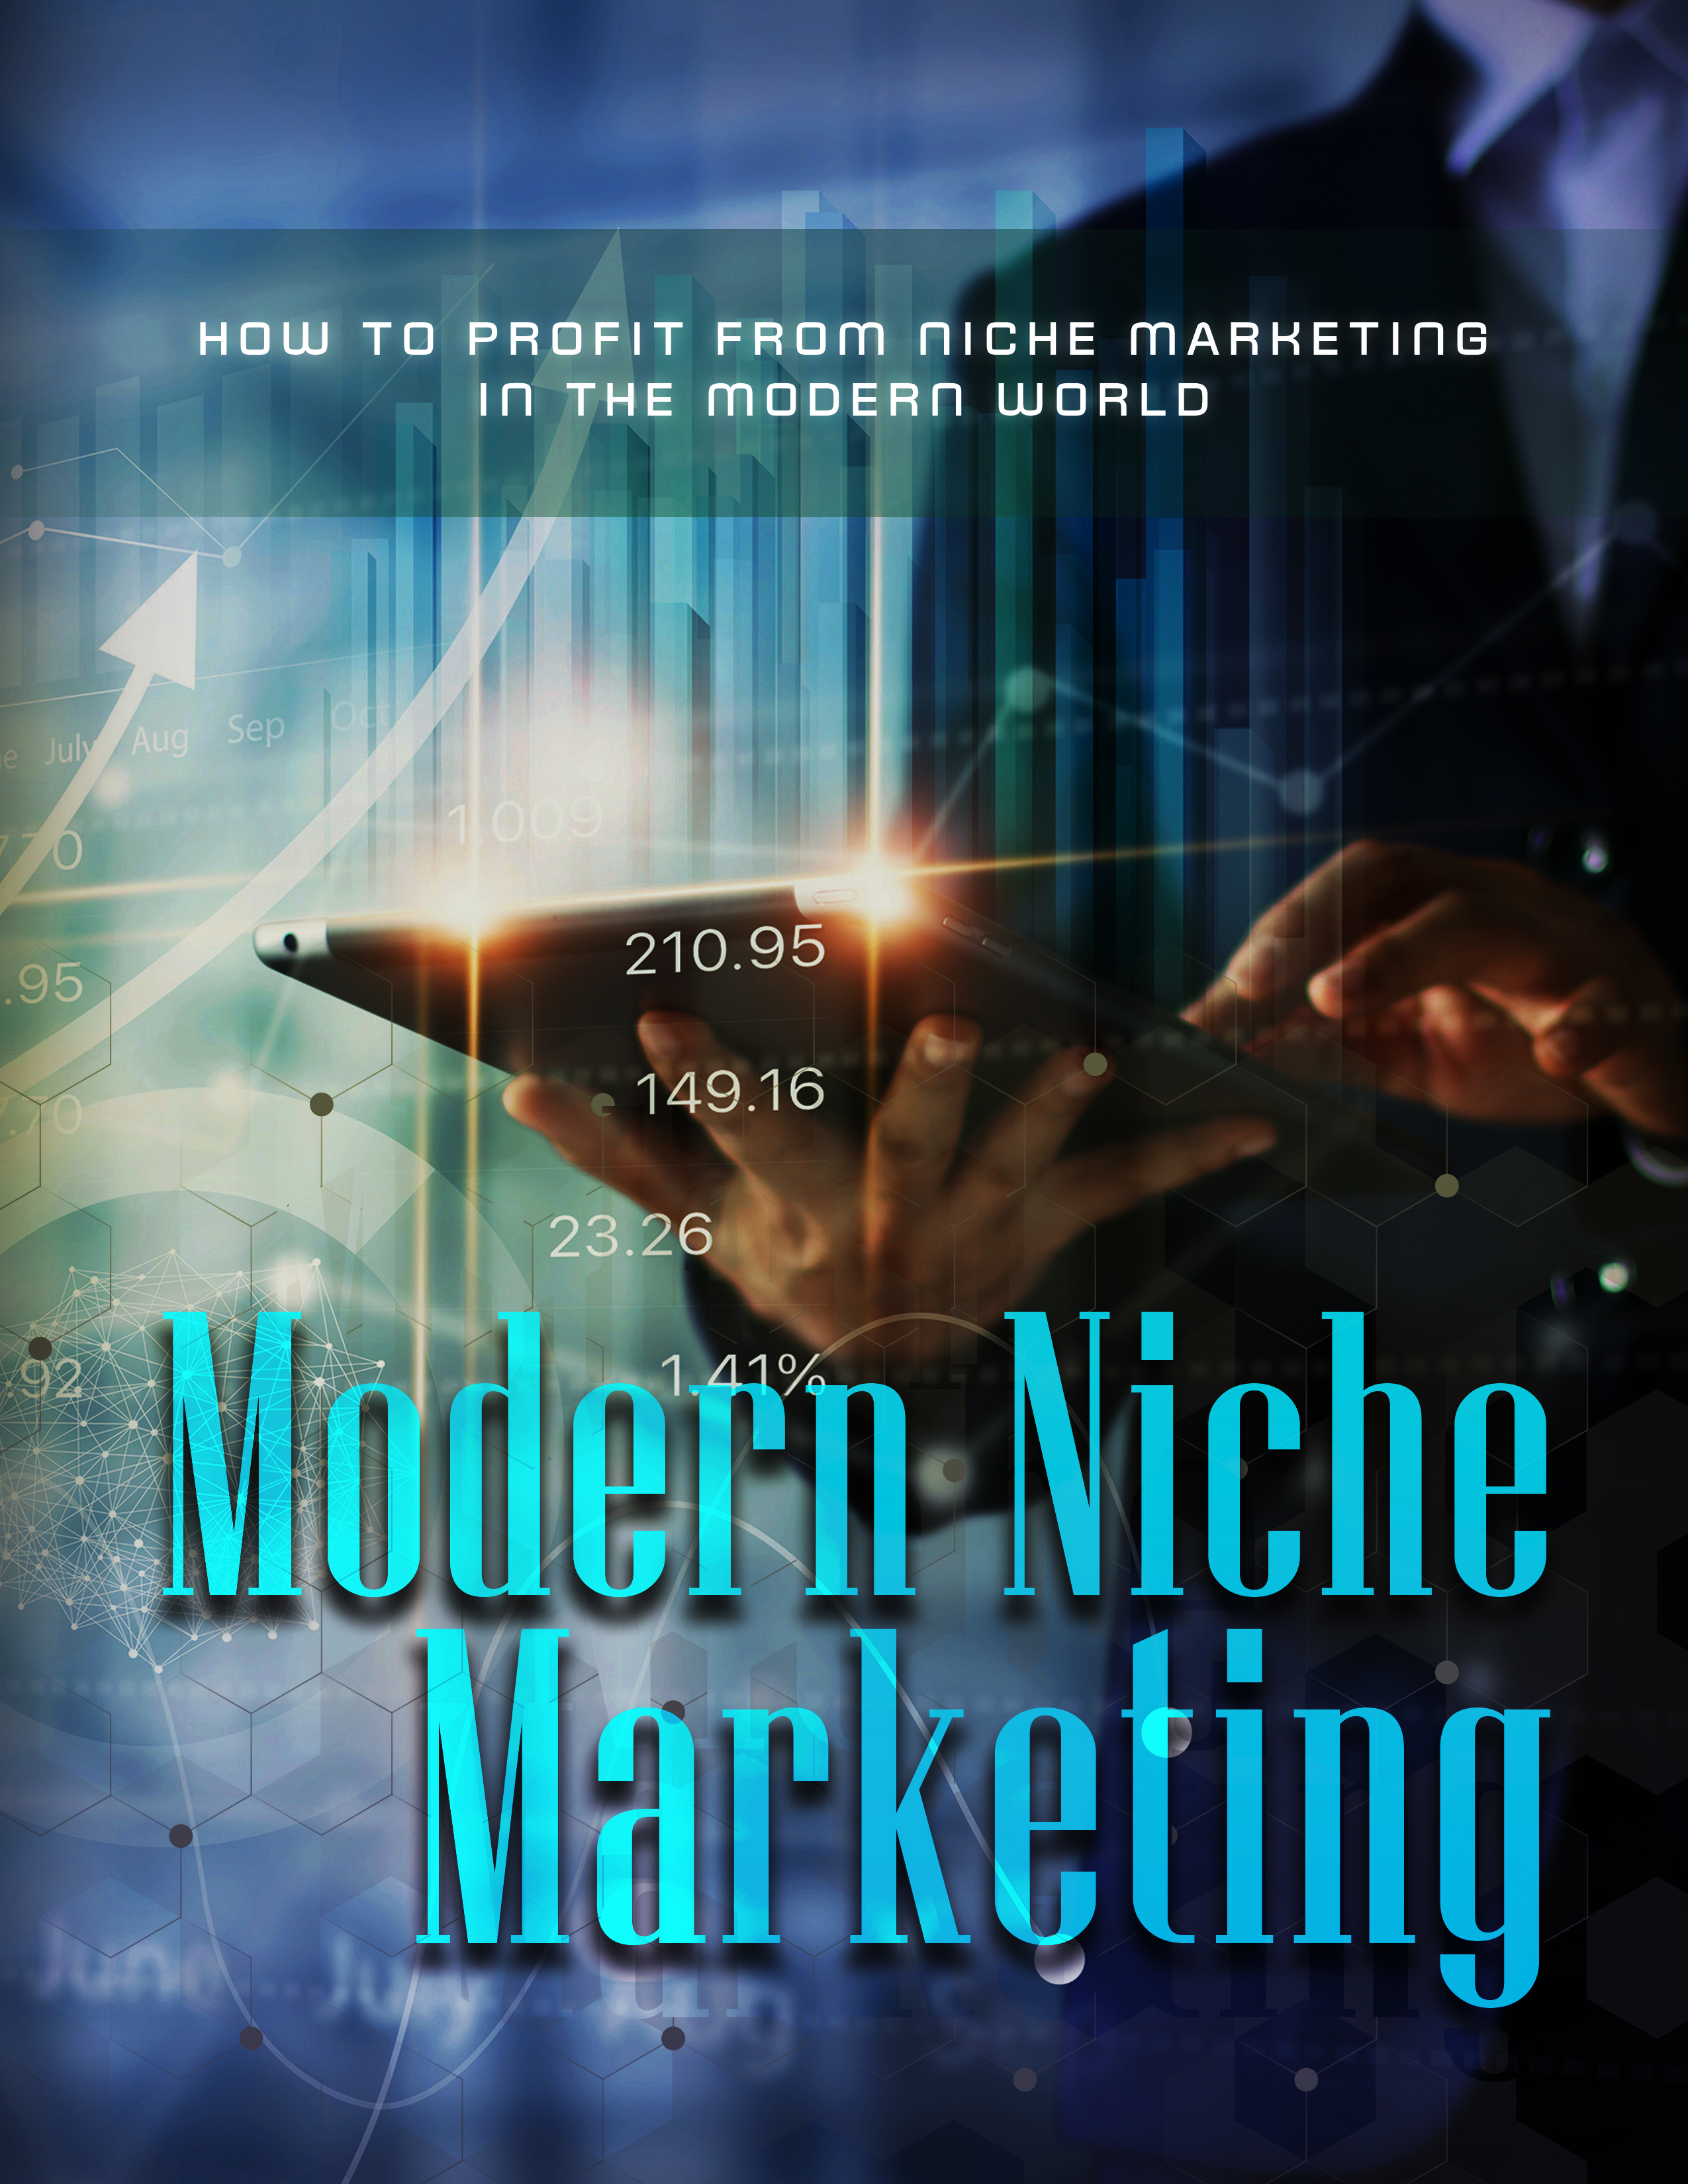 Modern Niche Marketing (How To Profit From Niche Marketing In The Modern World) Ebook's Ebook Image